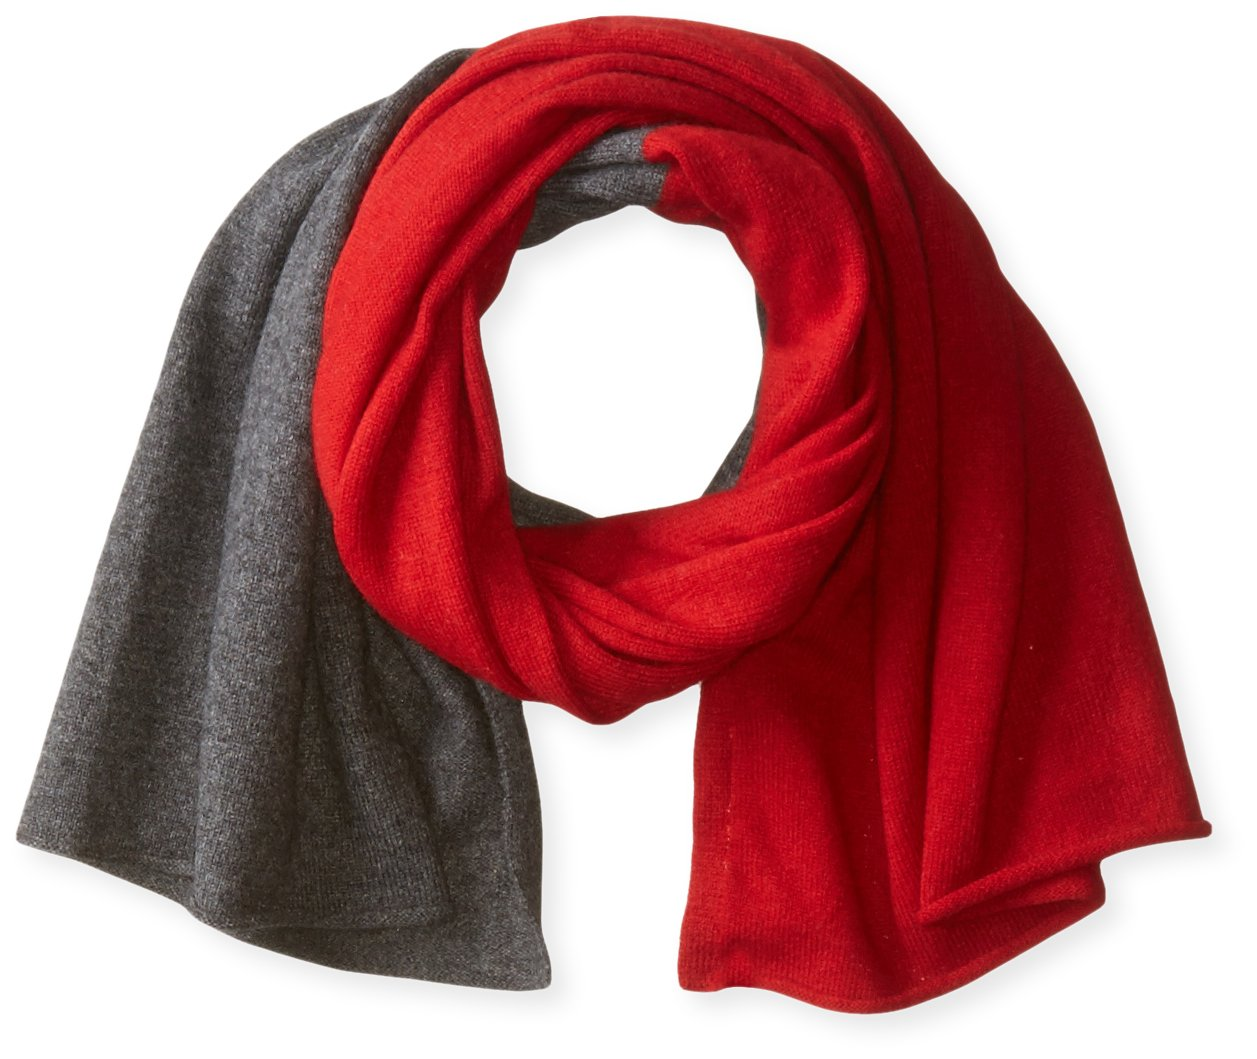 bela.nyc Women's Cashmere Two-Color Scarf, Bright Crimson/Charcoal Heather, One Size